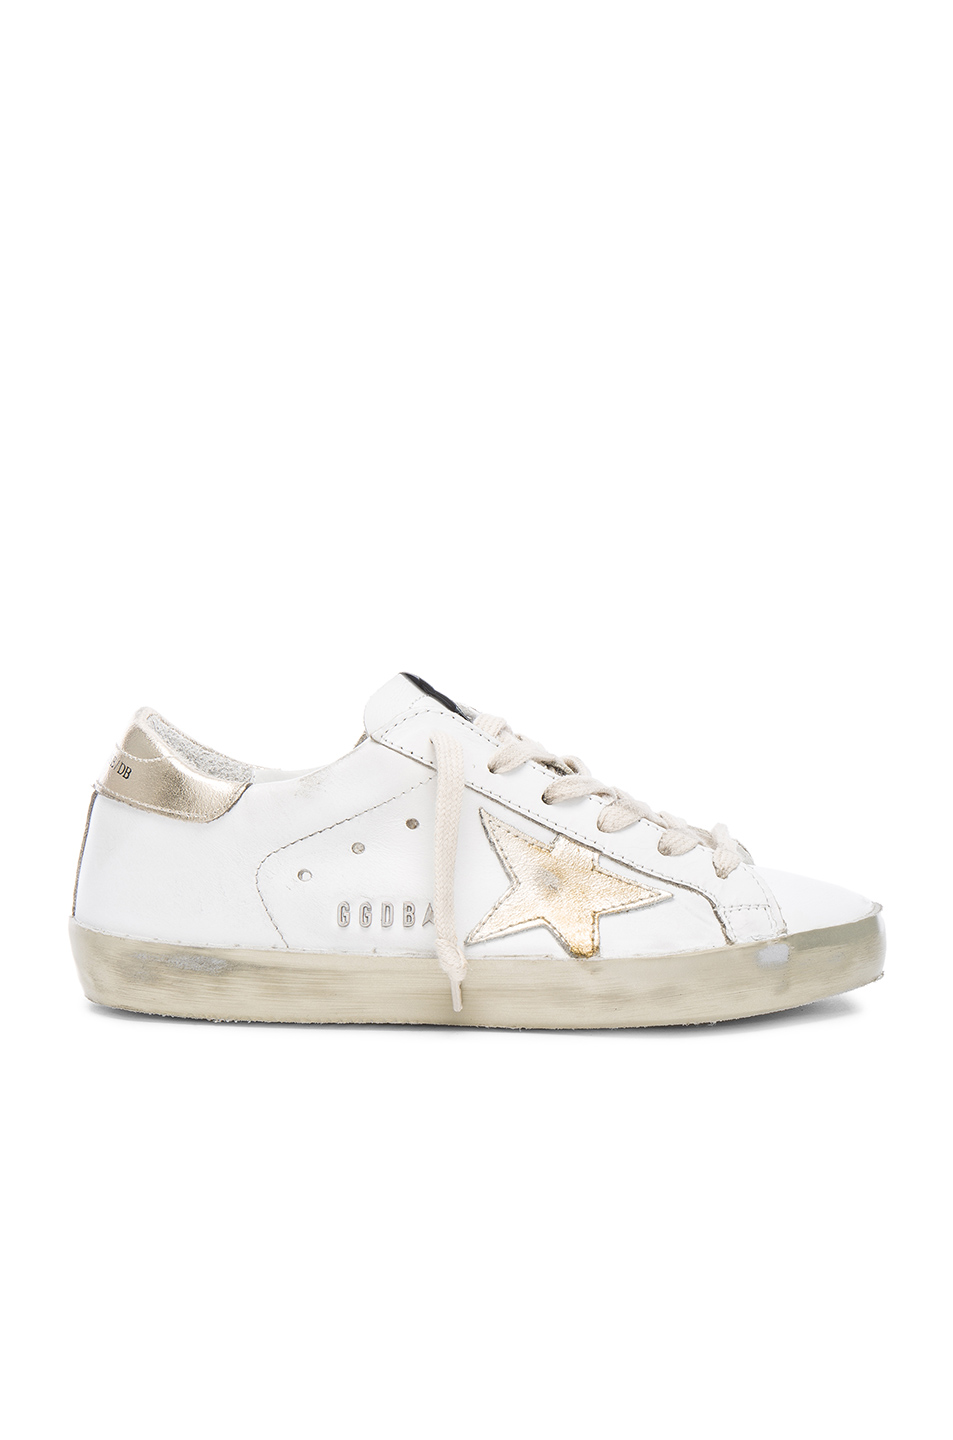 quality design f94bb 1d430 Golden Goose Super Star Sparkle Low-Top Leather Trainers In White